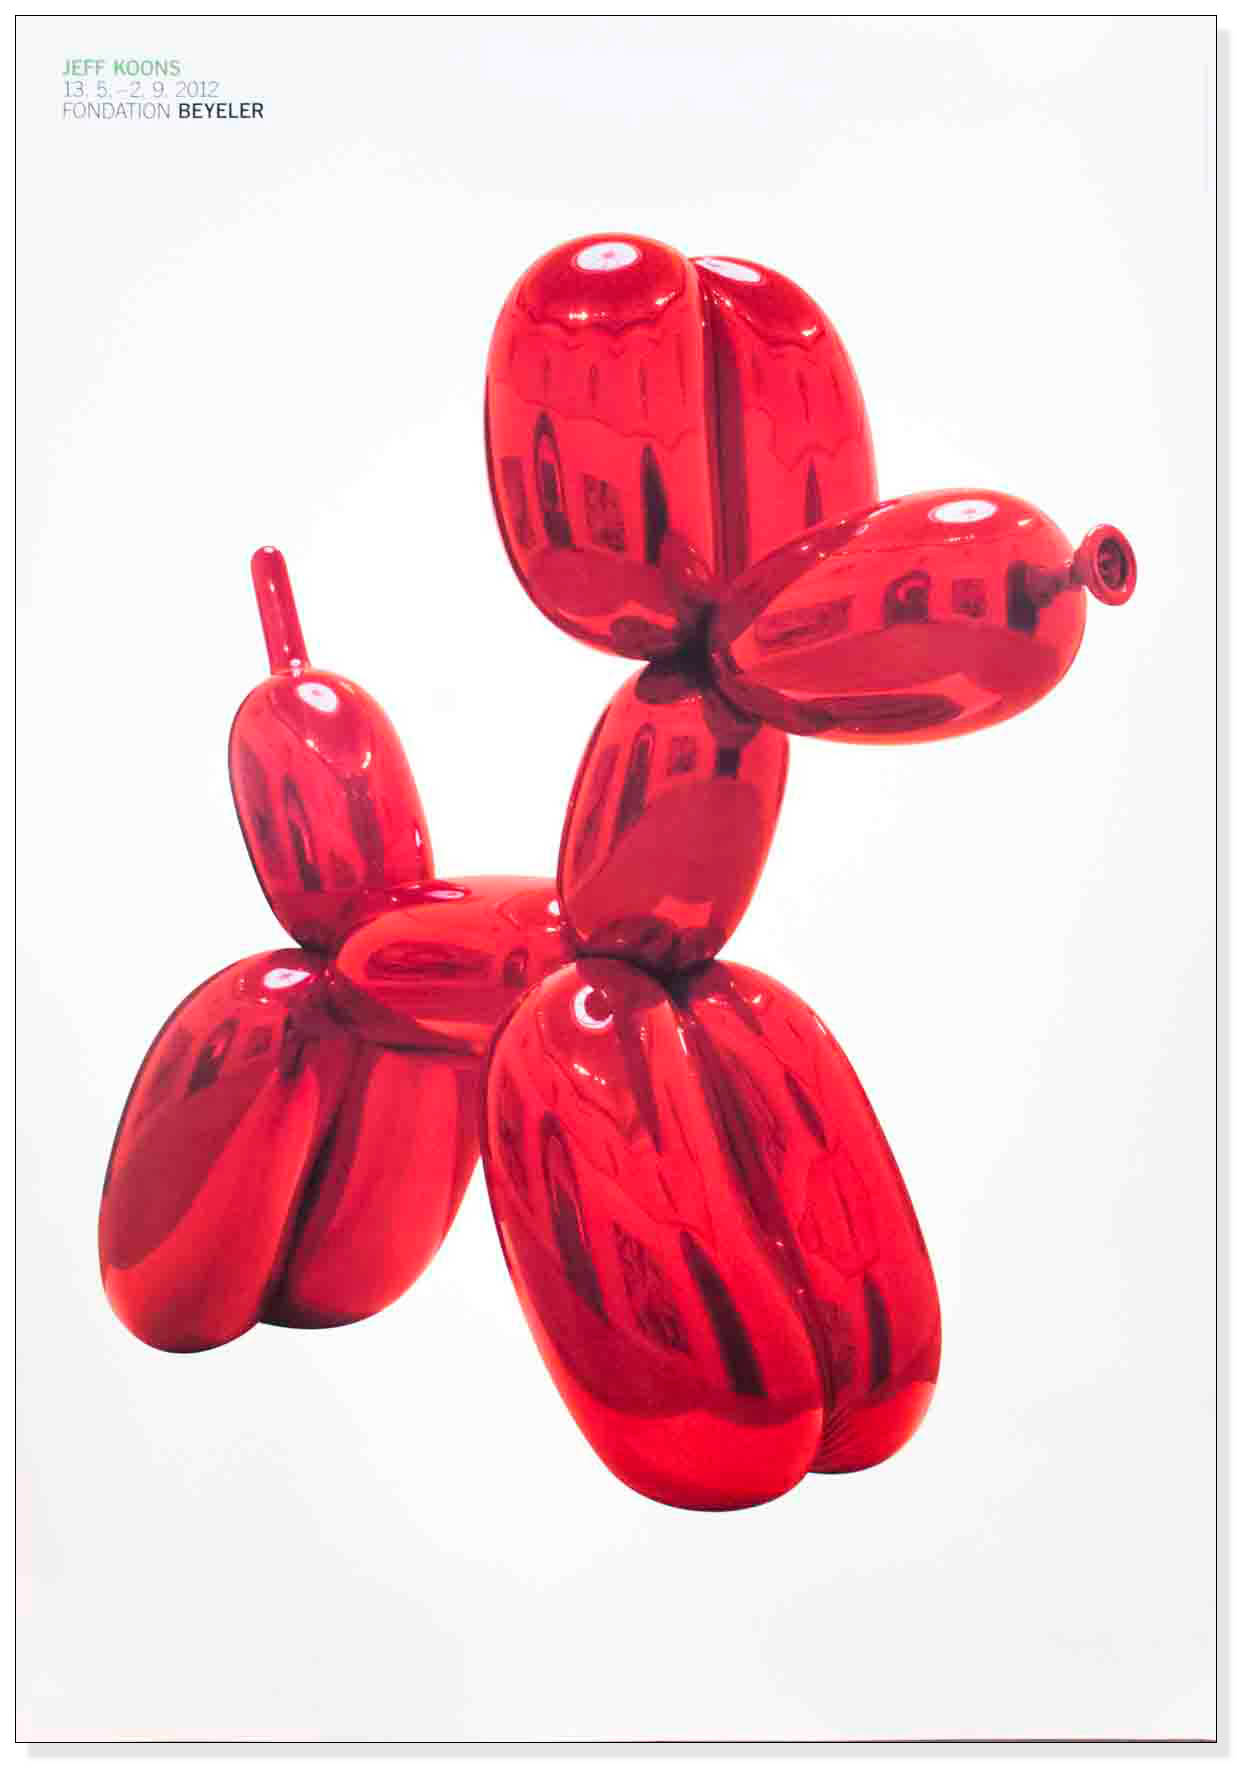 Balloon Dog (Red) 2012(ジェフ クーンズ)